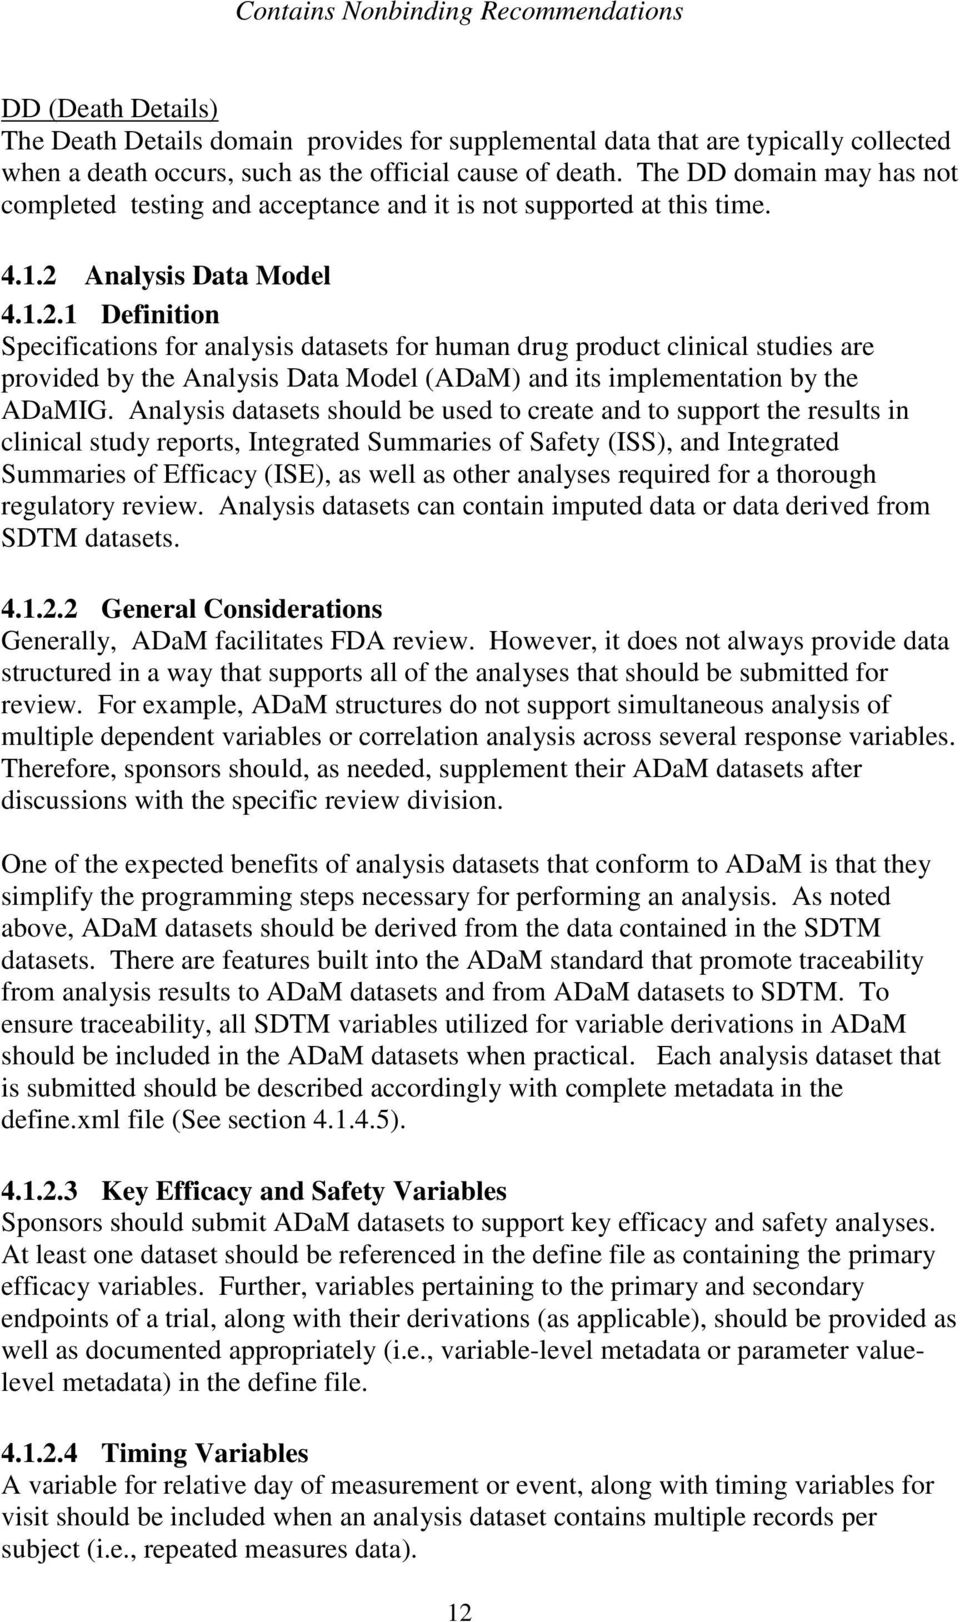 Analysis Data Model 4.1.2.1 Definition Specifications for analysis datasets for human drug product clinical studies are provided by the Analysis Data Model (ADaM) and its implementation by the ADaMIG.